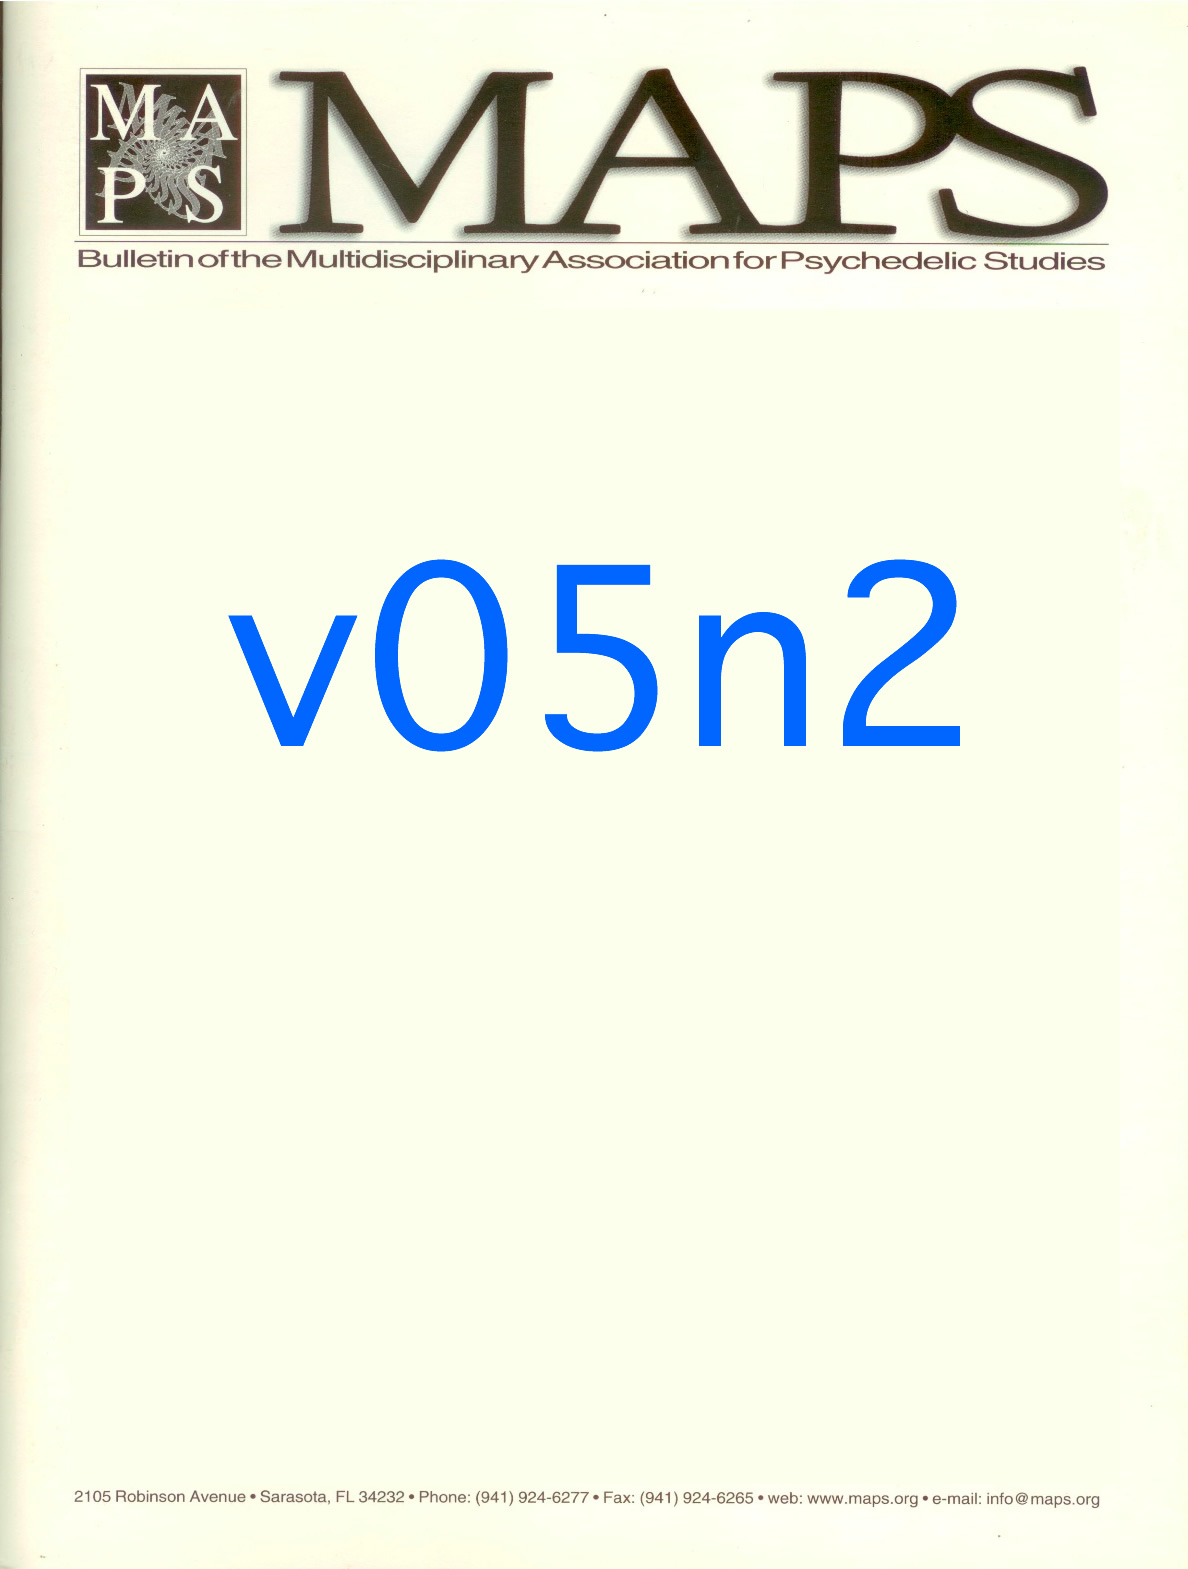 MAPS Bulletin Vol v No 2: Autumn 1994 - Front Cover Image - Psychedelic Art -  by